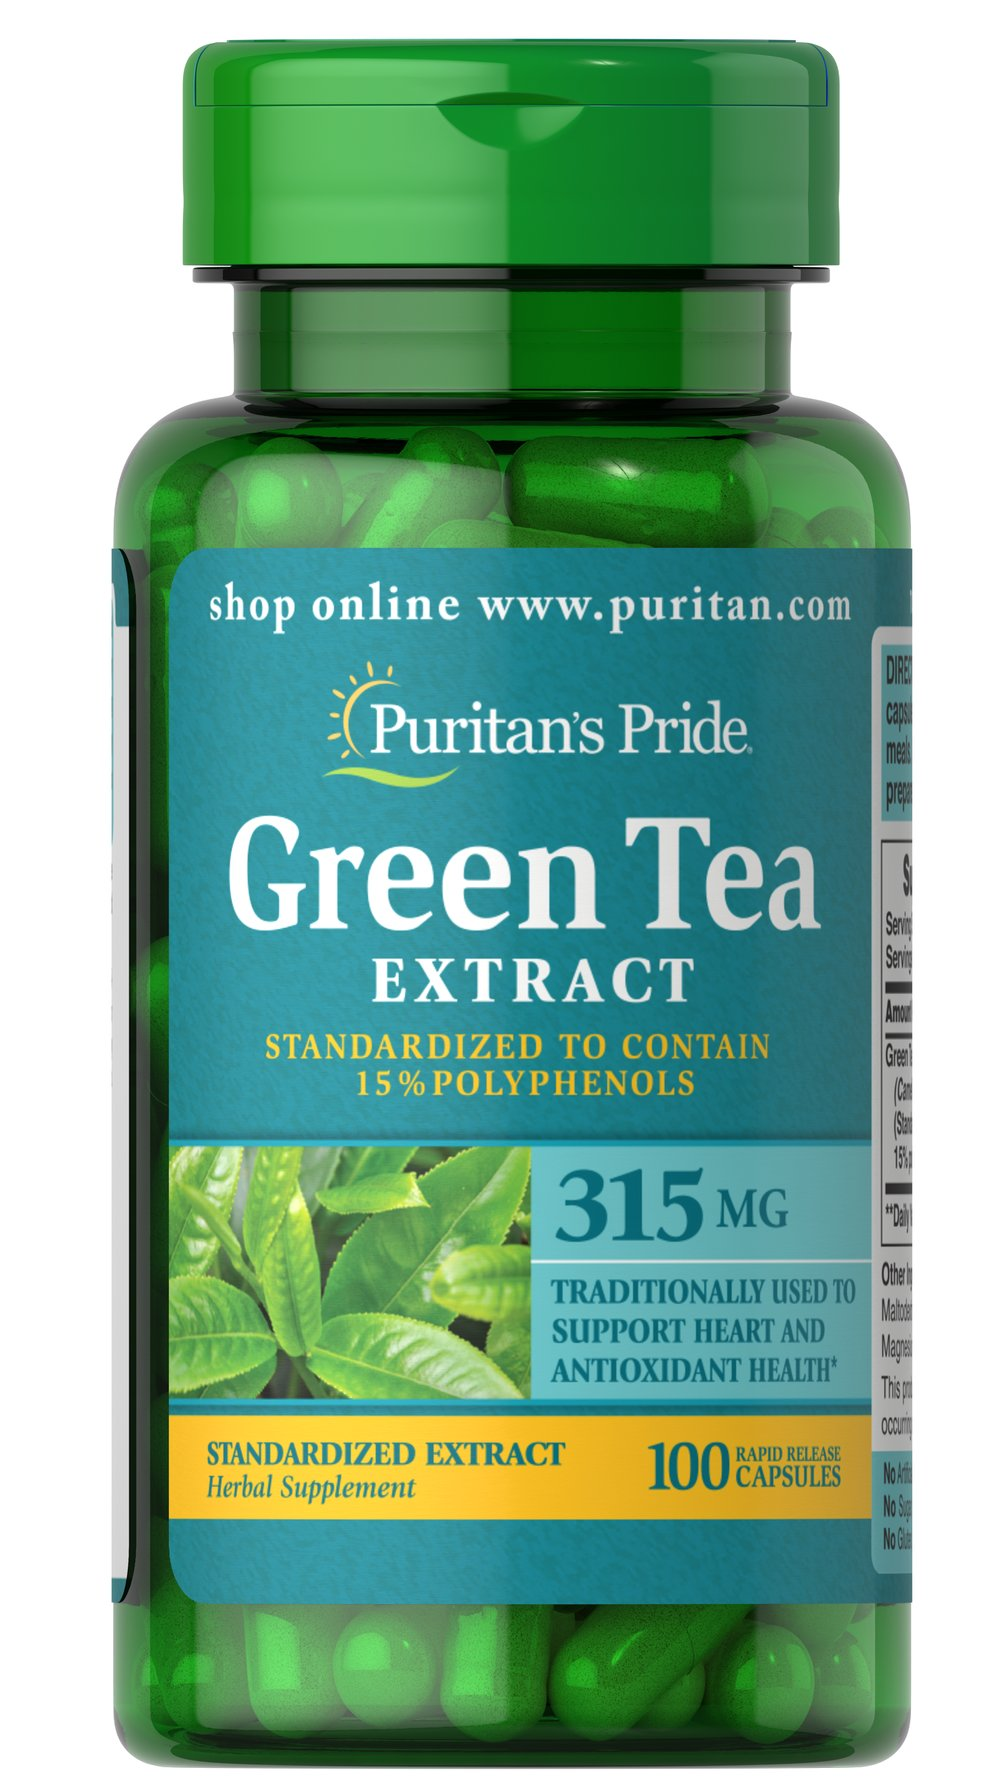 Green Tea Standardized Extract 315 mg Thumbnail Alternate Bottle View